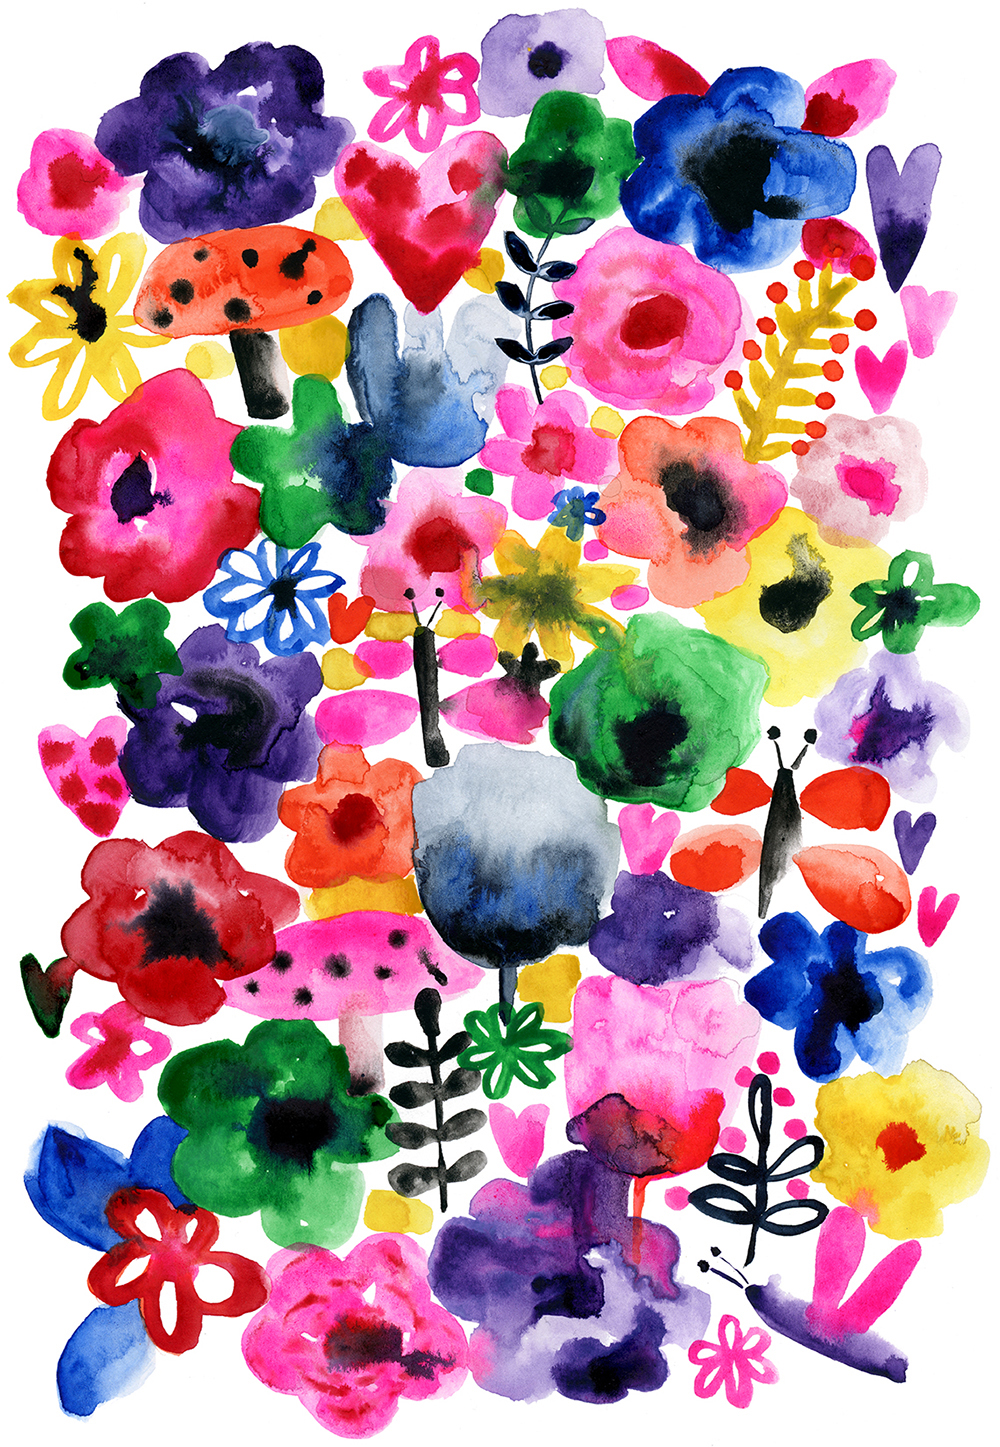 Watercolor Florals Pattern by Marenthe.jpg